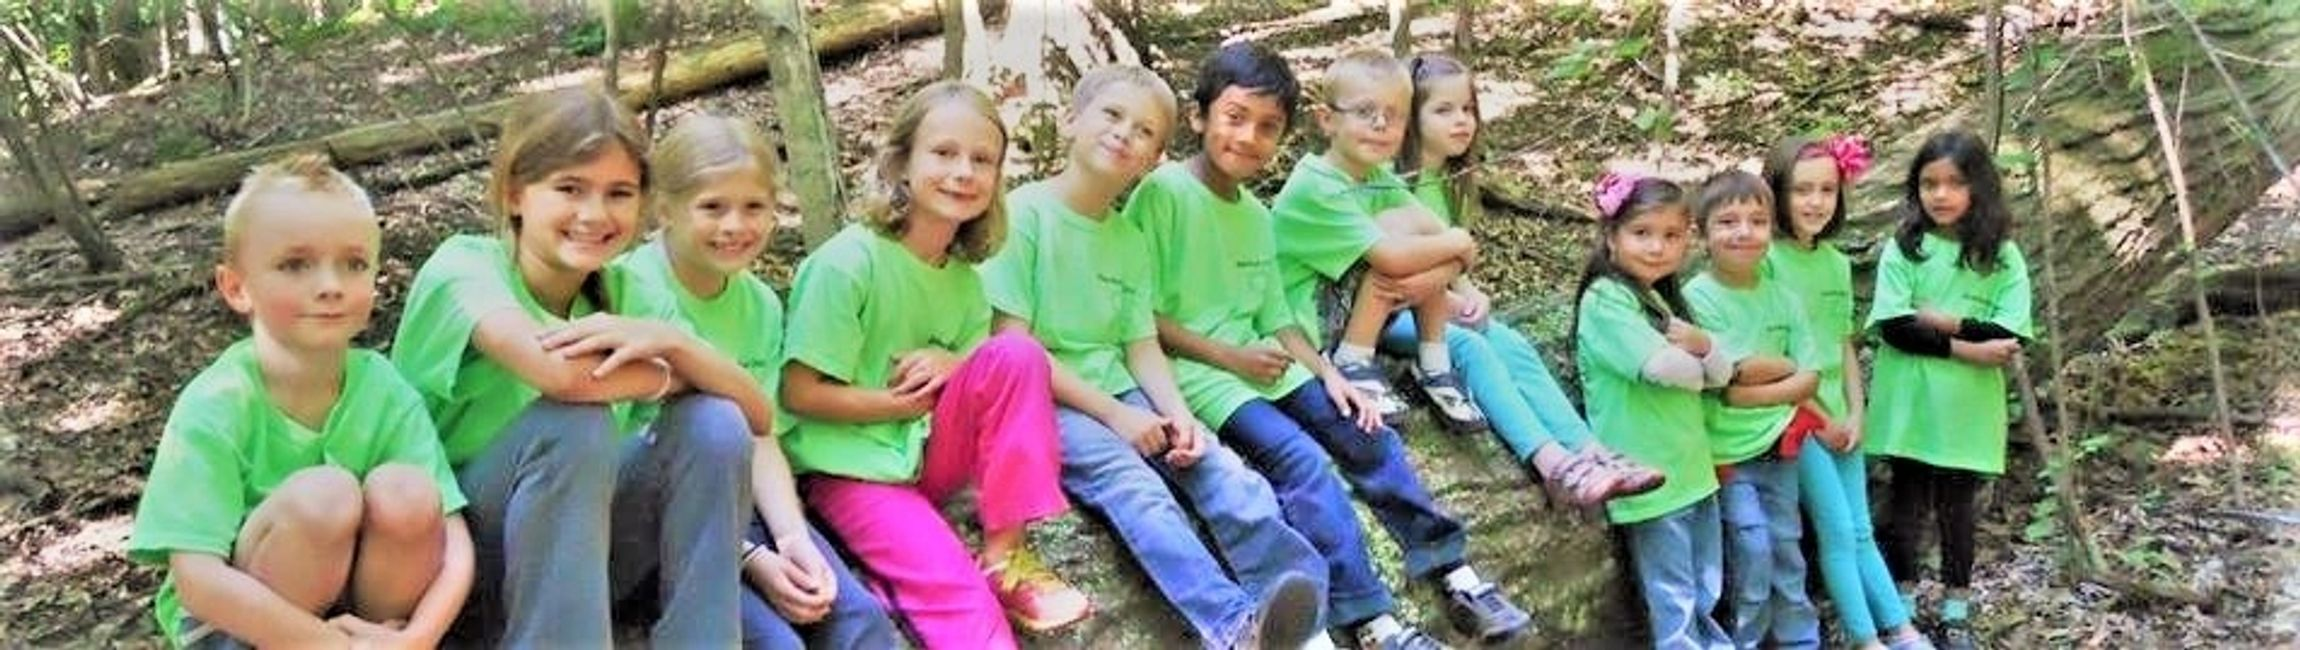 summercamp summer daycare school education childcare fieldtrips fairport bates-rich bates school